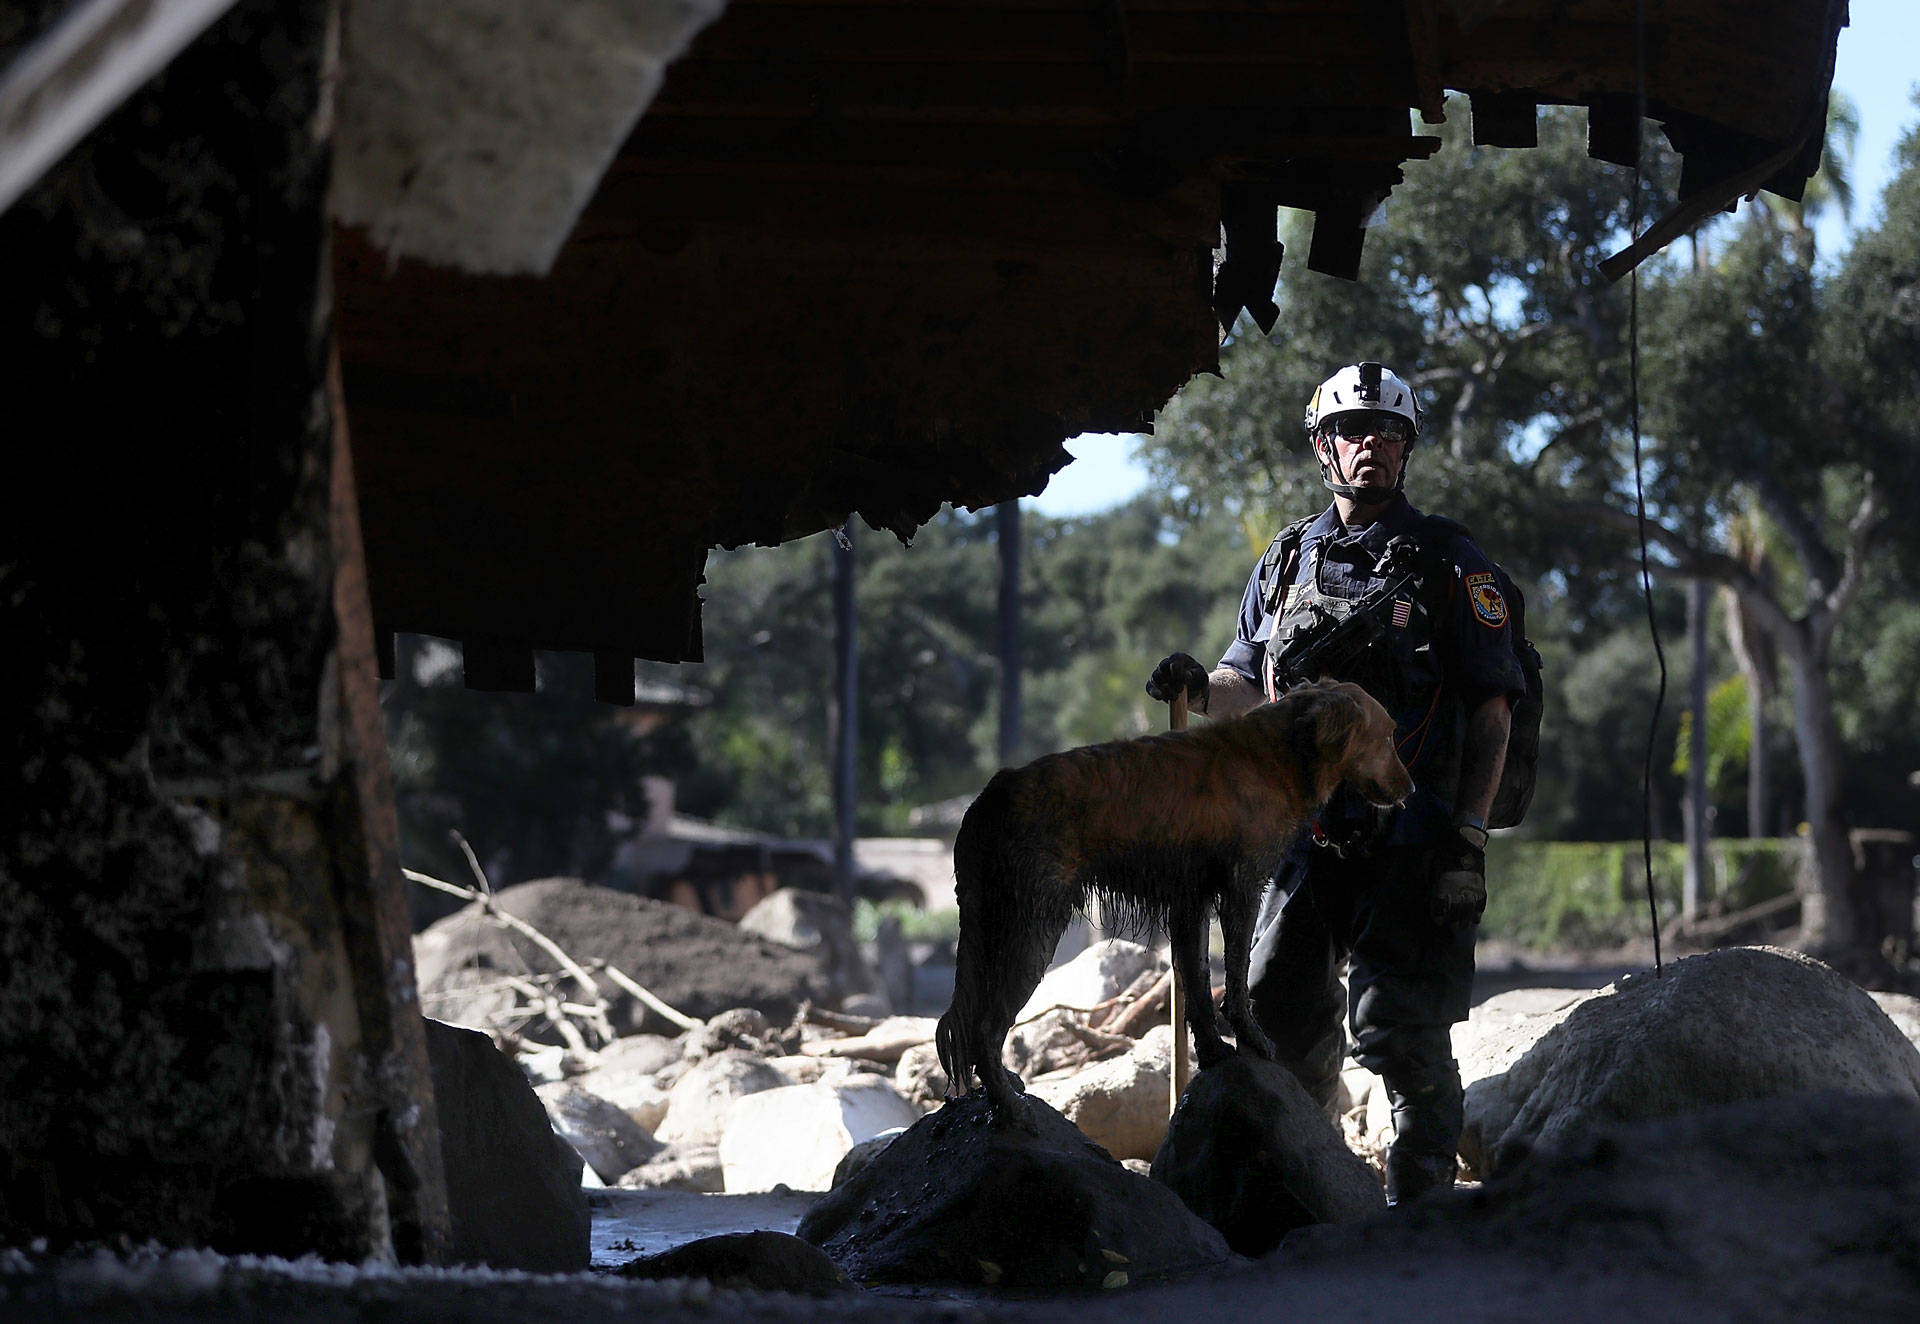 An urban search-and-rescue team member and his dog search a home that was destroyed by a mudslide on Jan. 11, 2018, in Montecito. Justin Sullivan/Getty Images